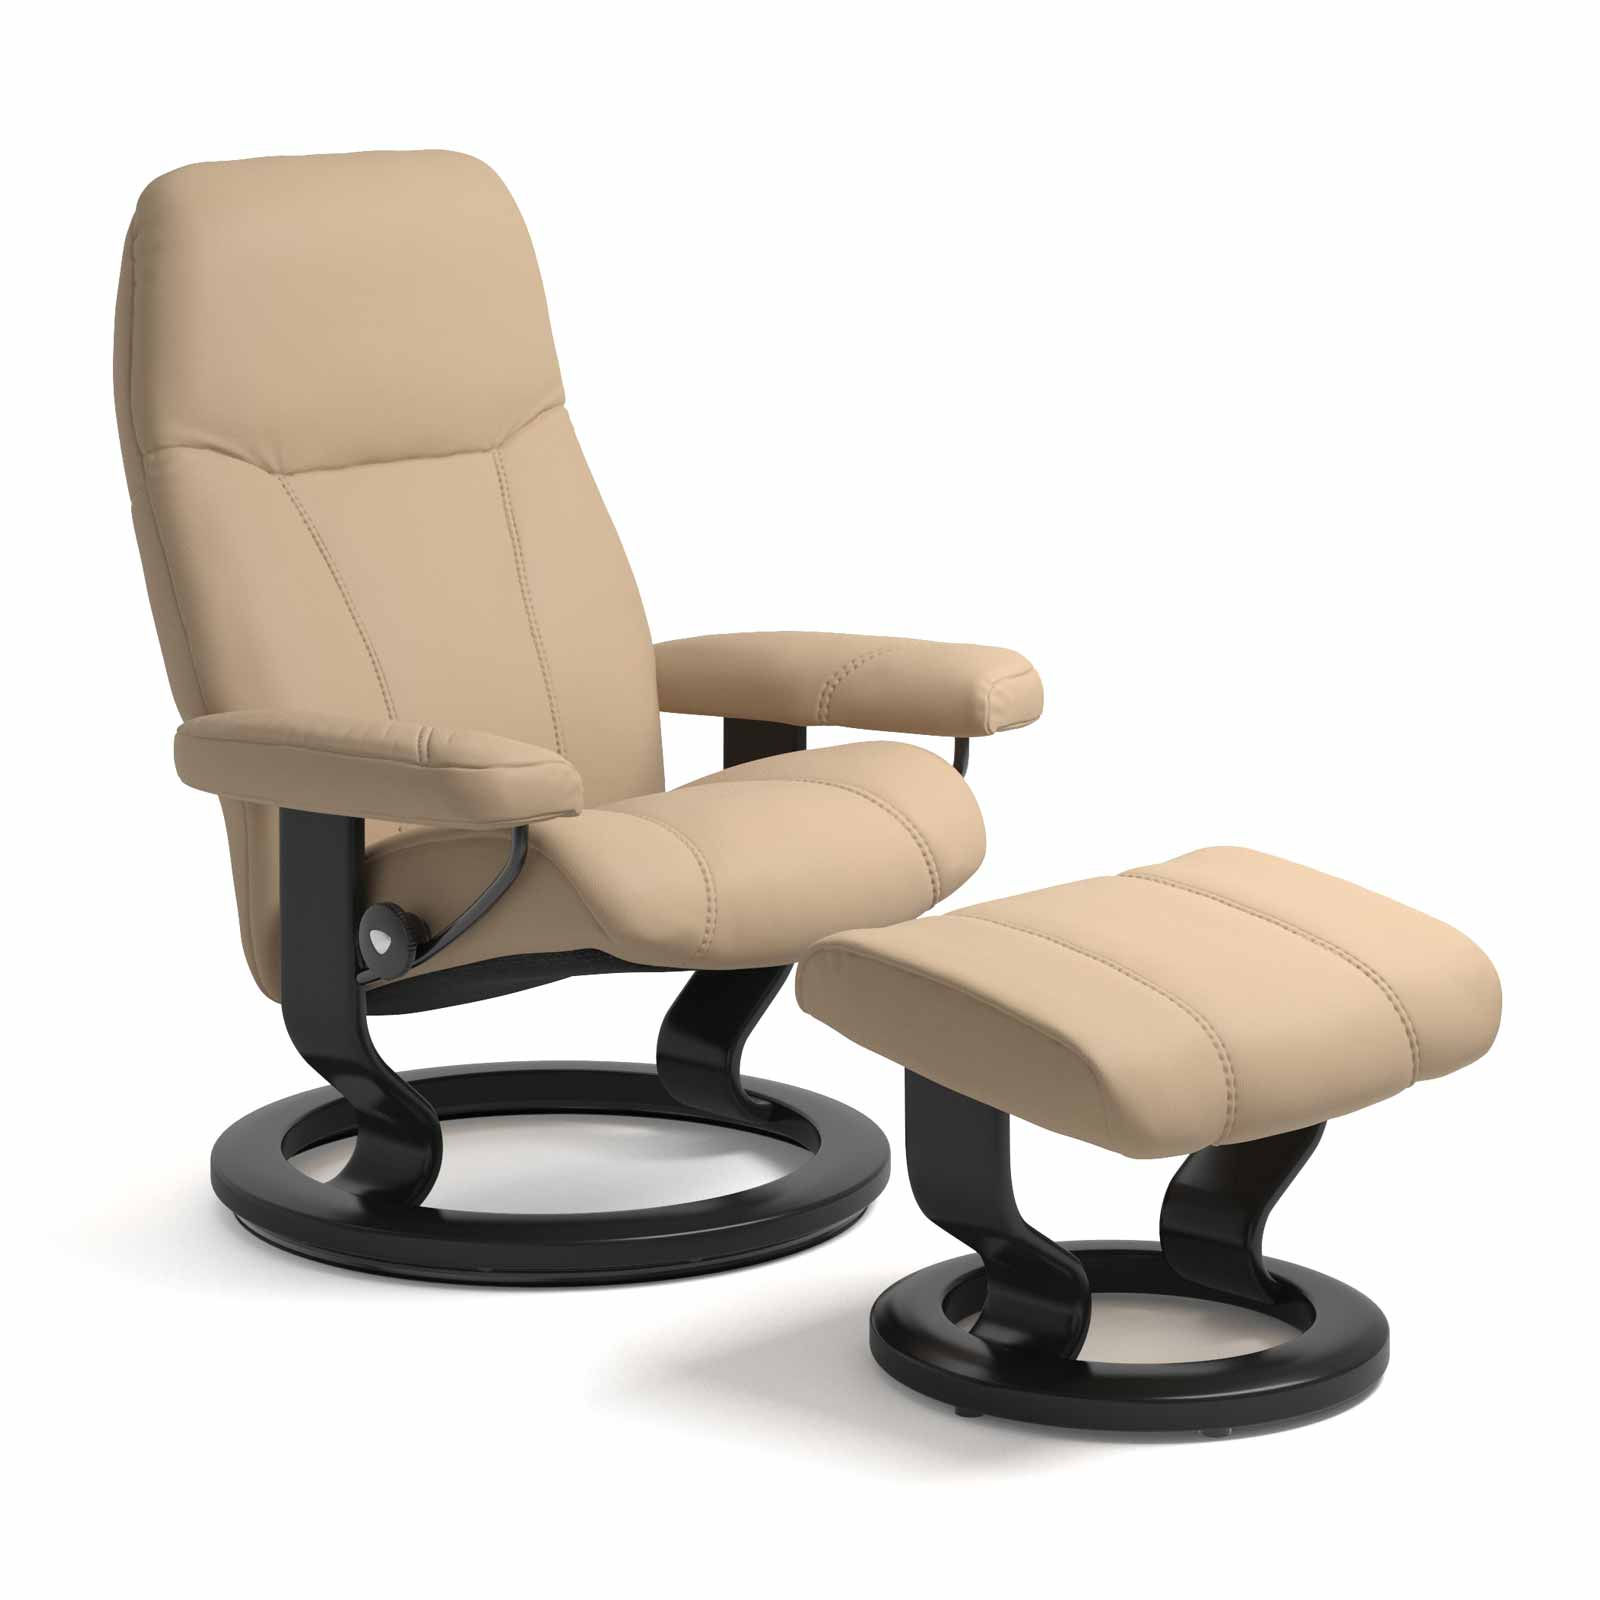 Stressless Sessel Wing Stressless Consul Classic Paloma Beige Mit Hocker | Stressless